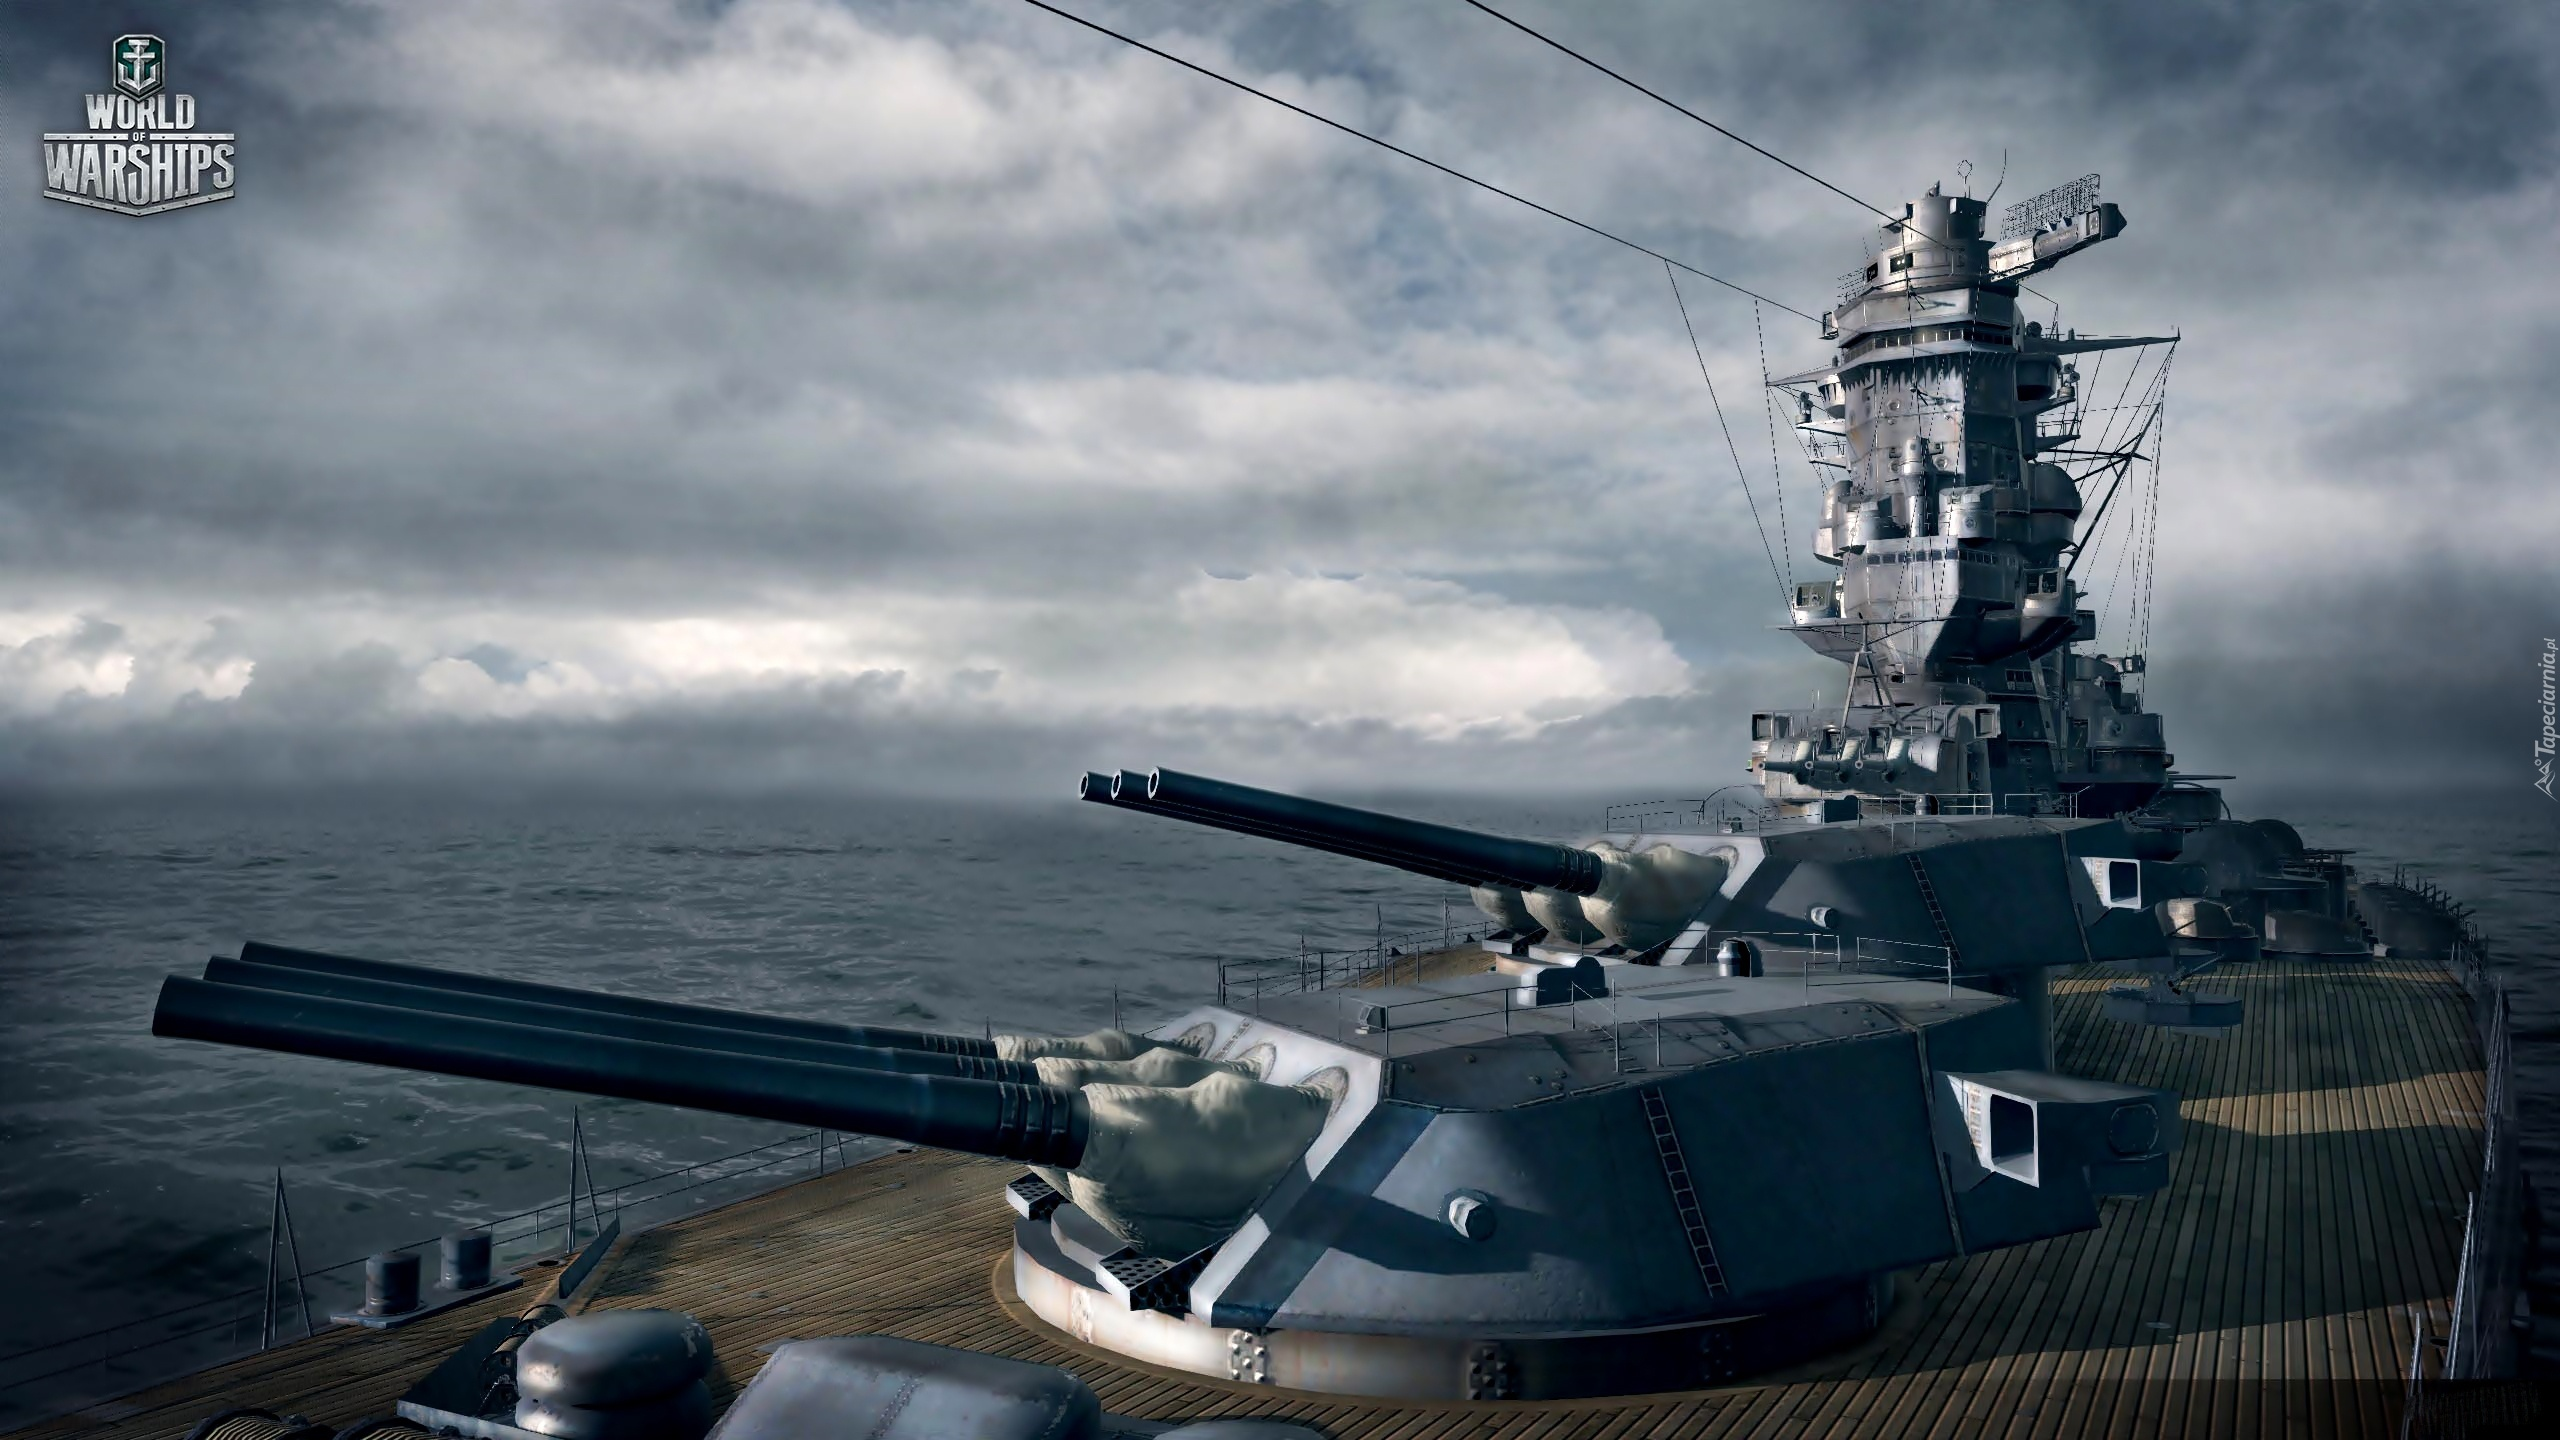 World Of Warships, Statek, Wojenny